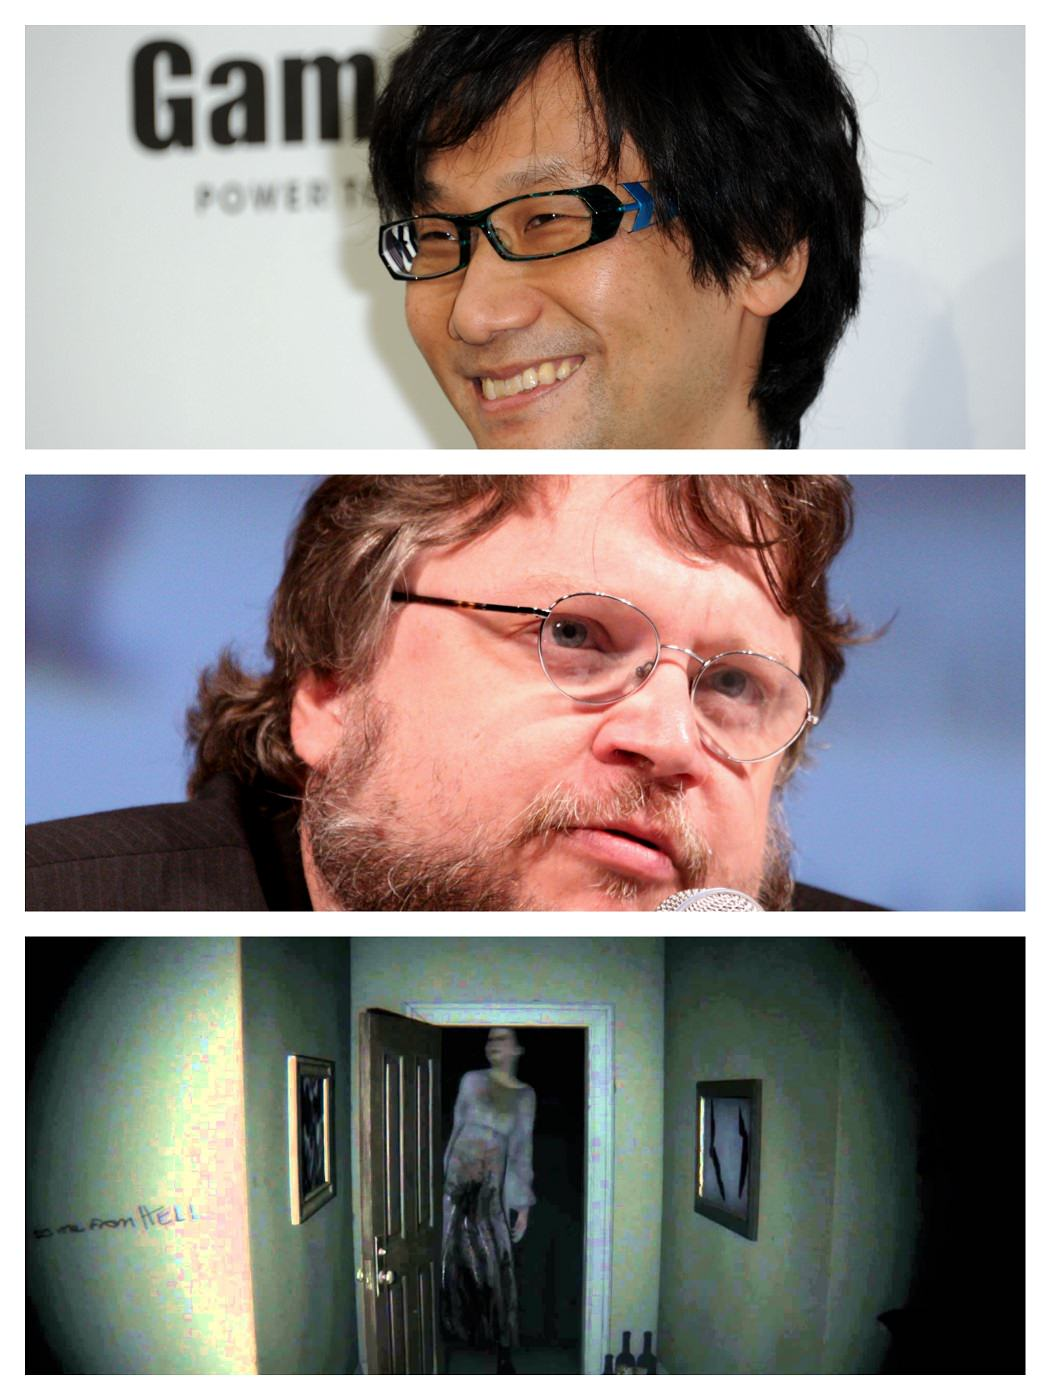 Guillermo_del_Toro_by_Gage_Skidmore_Fotor_Collage